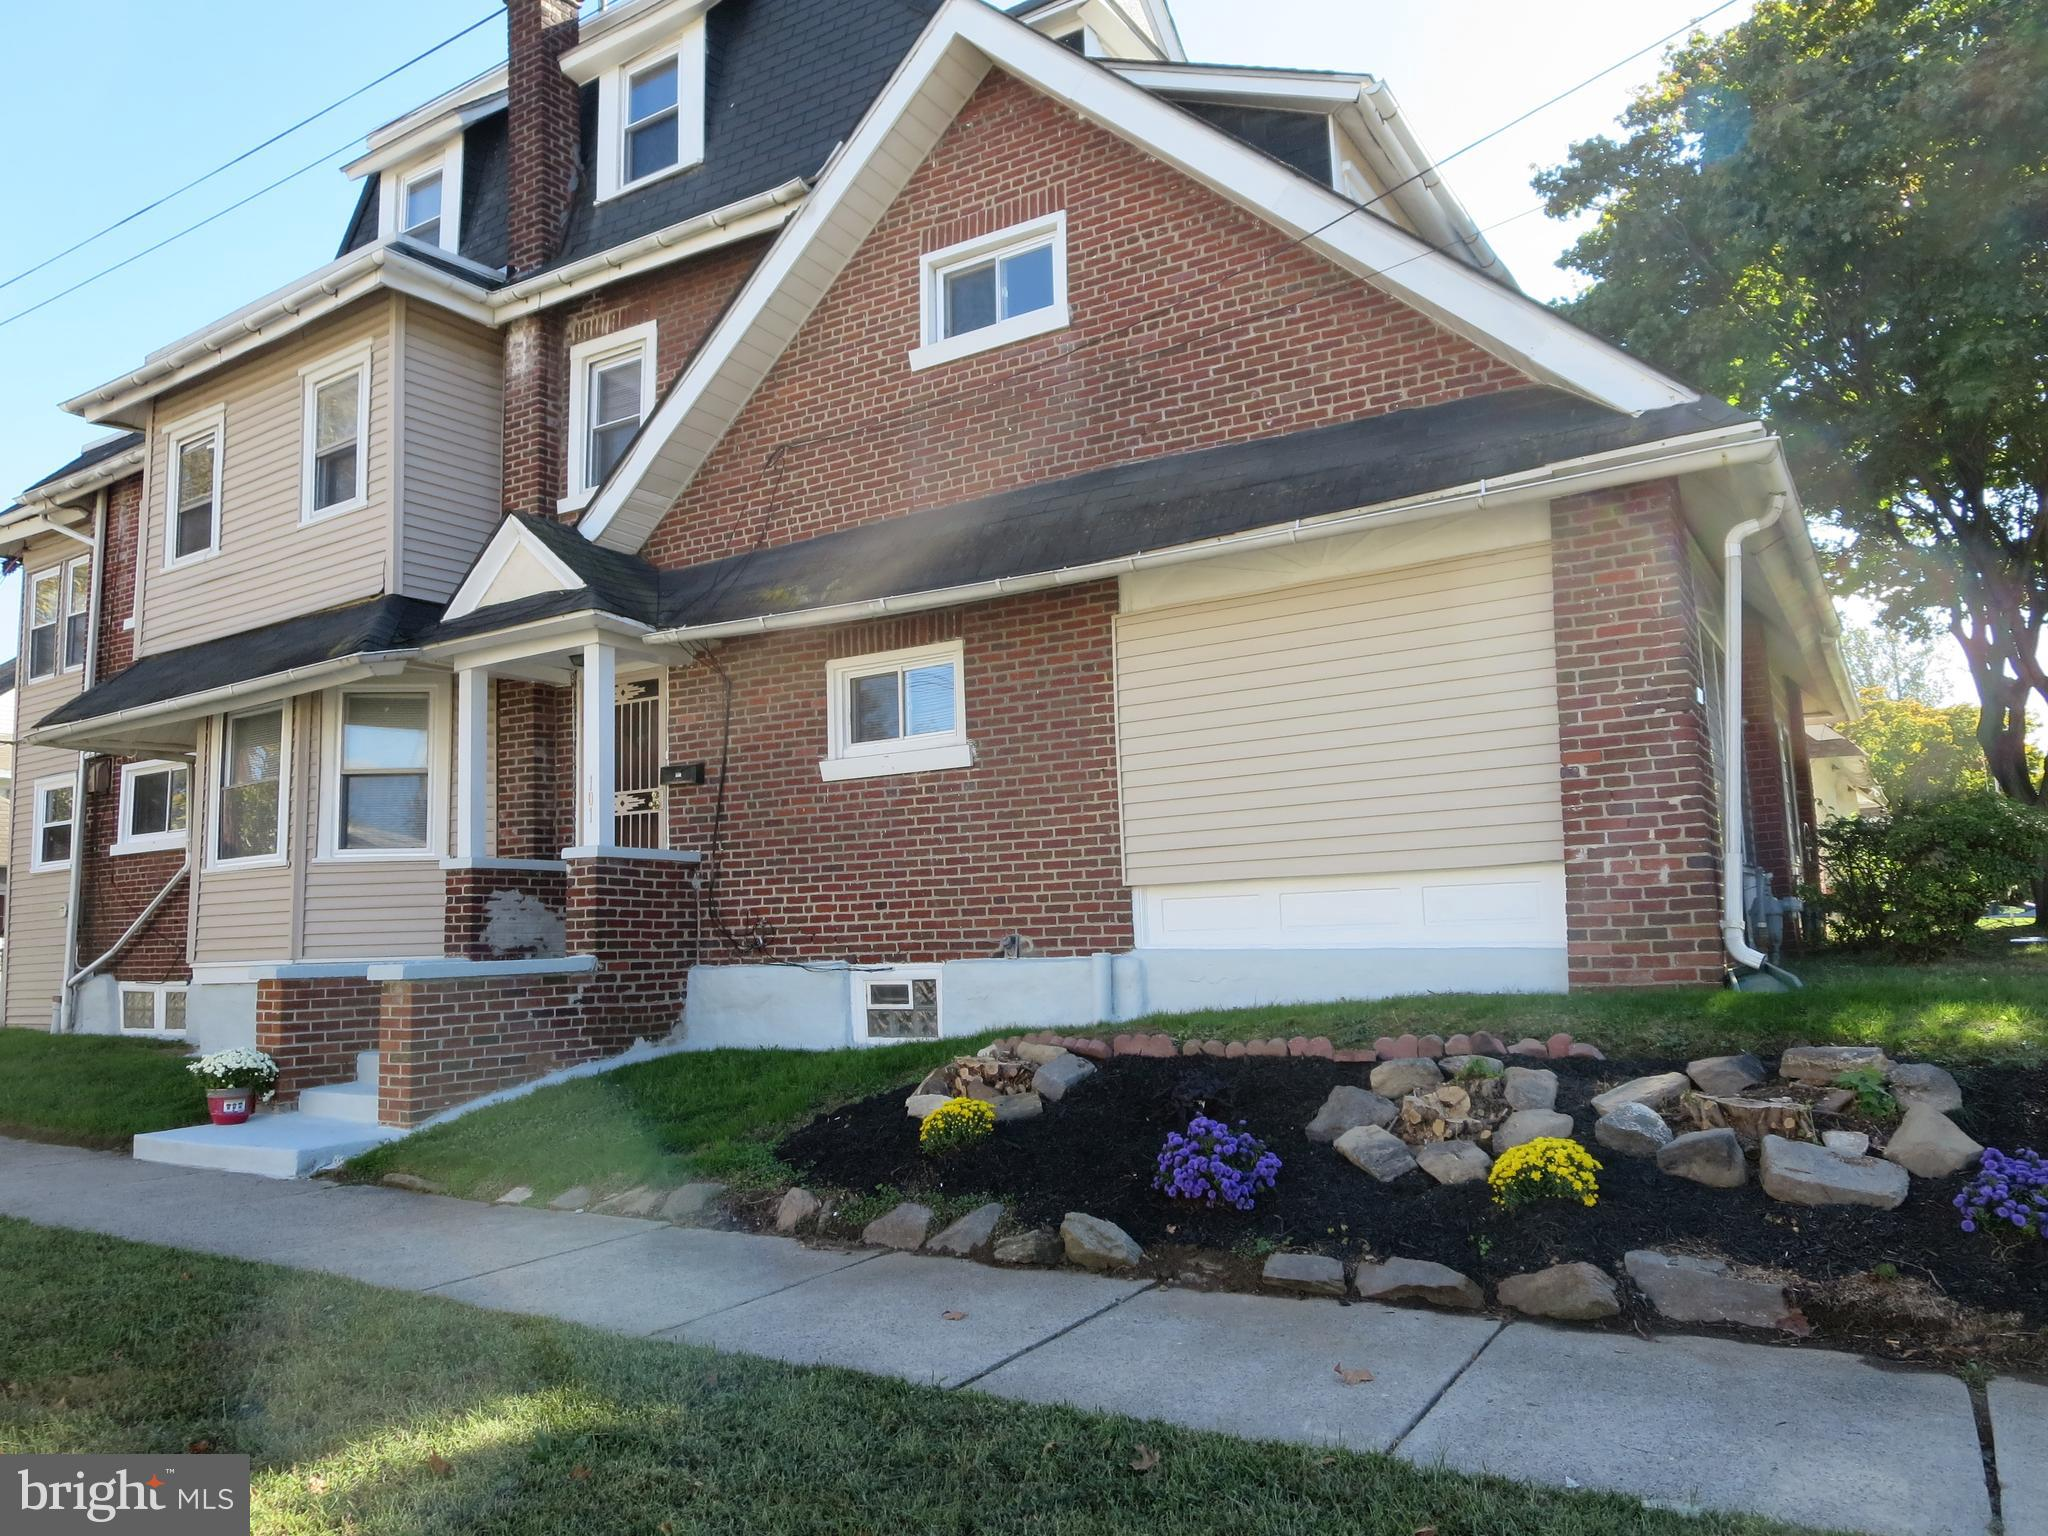 101 W MOWRY STREET, CHESTER, PA 19013